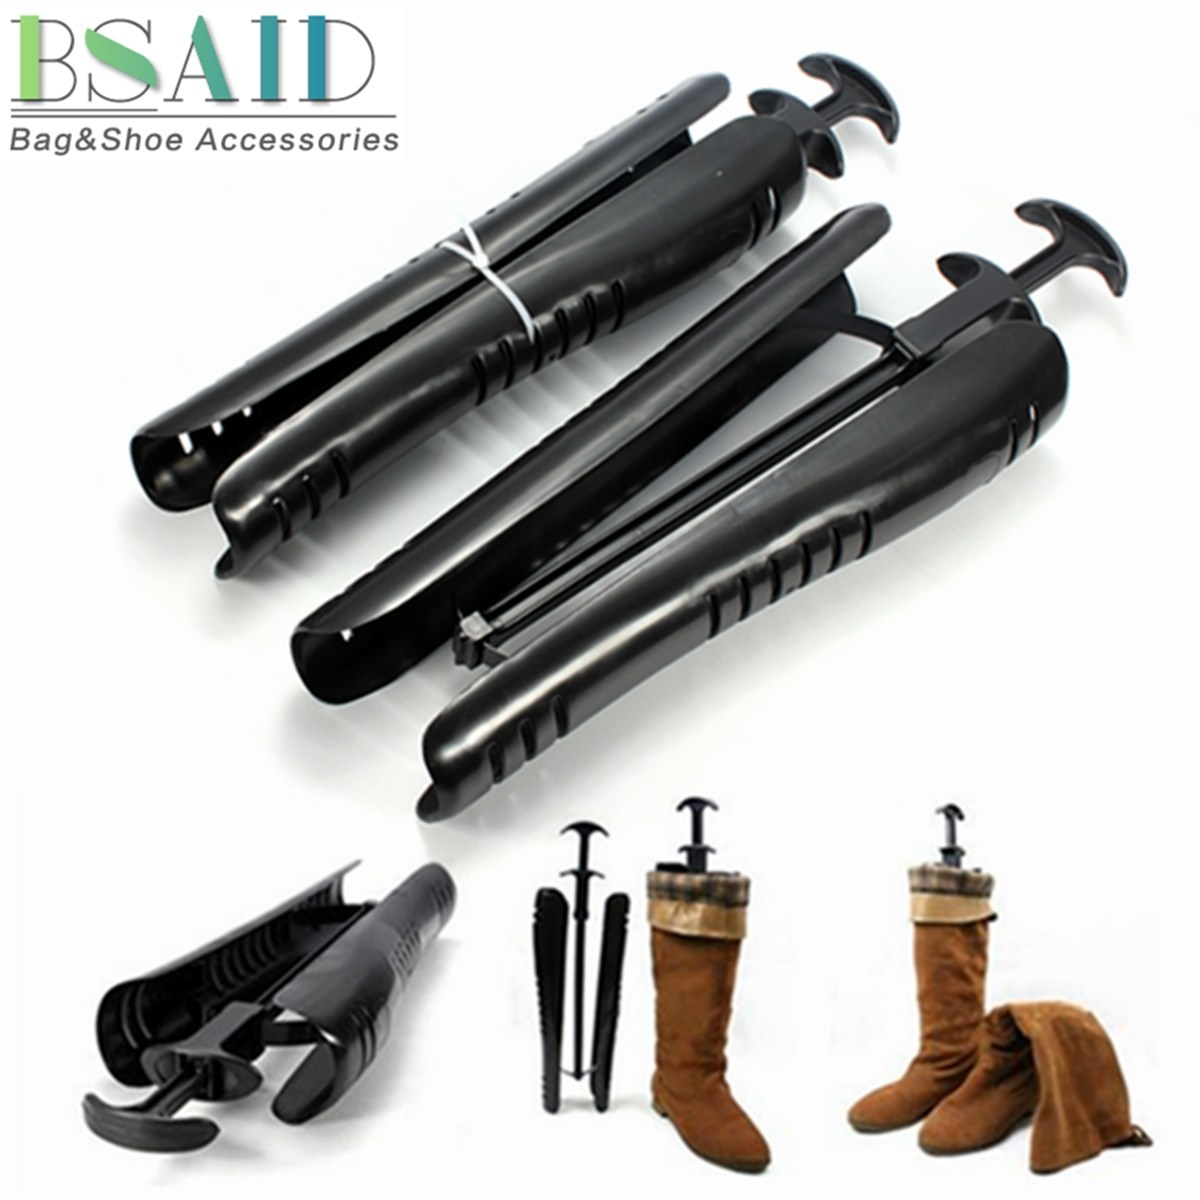 BSAID 1 Pair Long Shaper Supporter Boot Stand Boots Expander, Shoe Stretcher Shoes Tree Rack Support Shaft Keeper Holder Storage 10pcs asds 1 pair 12 inch white film inflatable boot stretcher shaper shoe tree